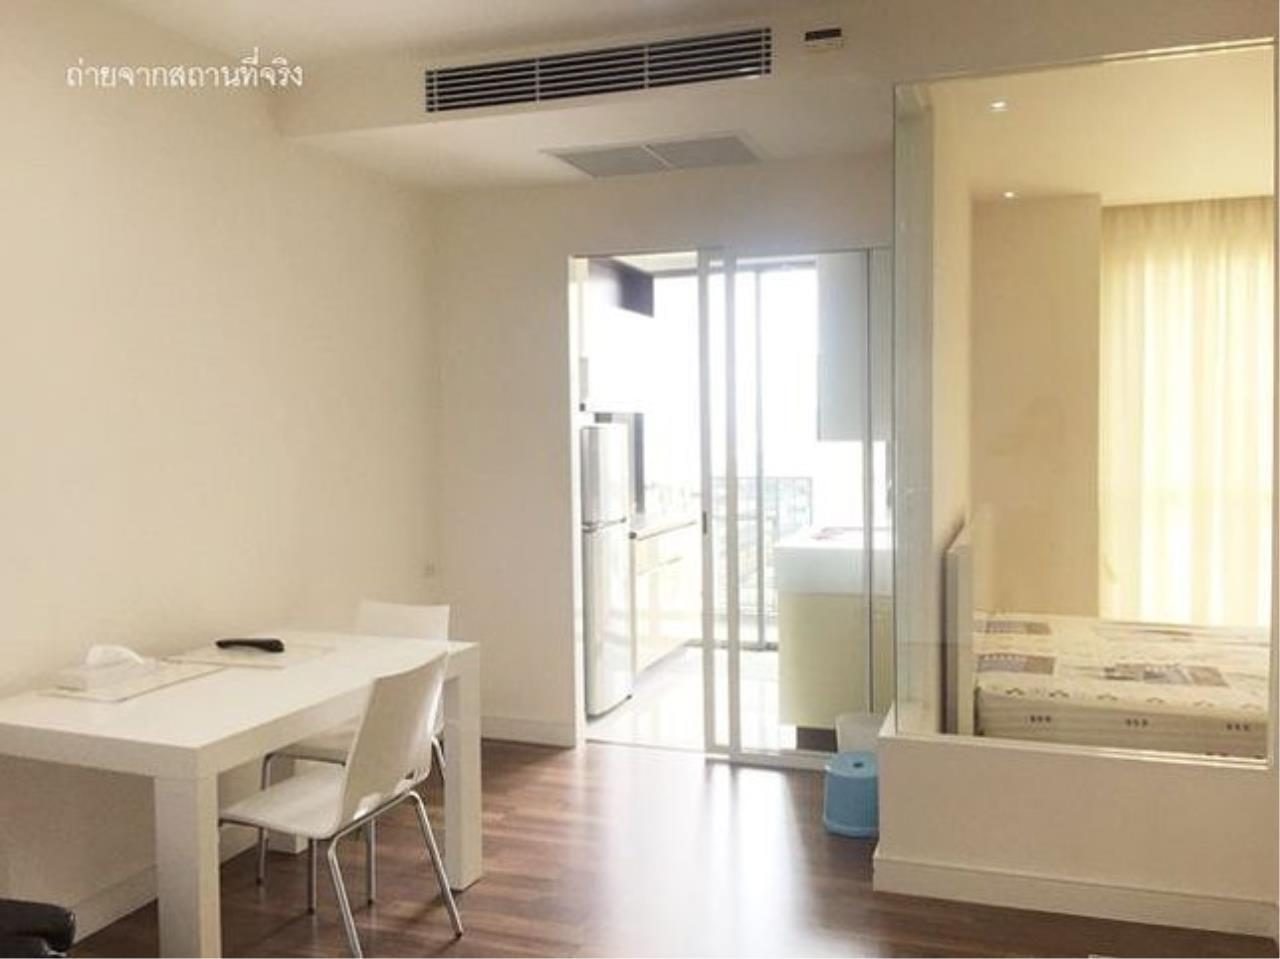 Quality Life Property Agency's RENT **** WITH TENANT ! THE ROOM SUKHUMVIT 62 | 1 BED 1 BATH | 45 SQ. M. 20 FOOR 2